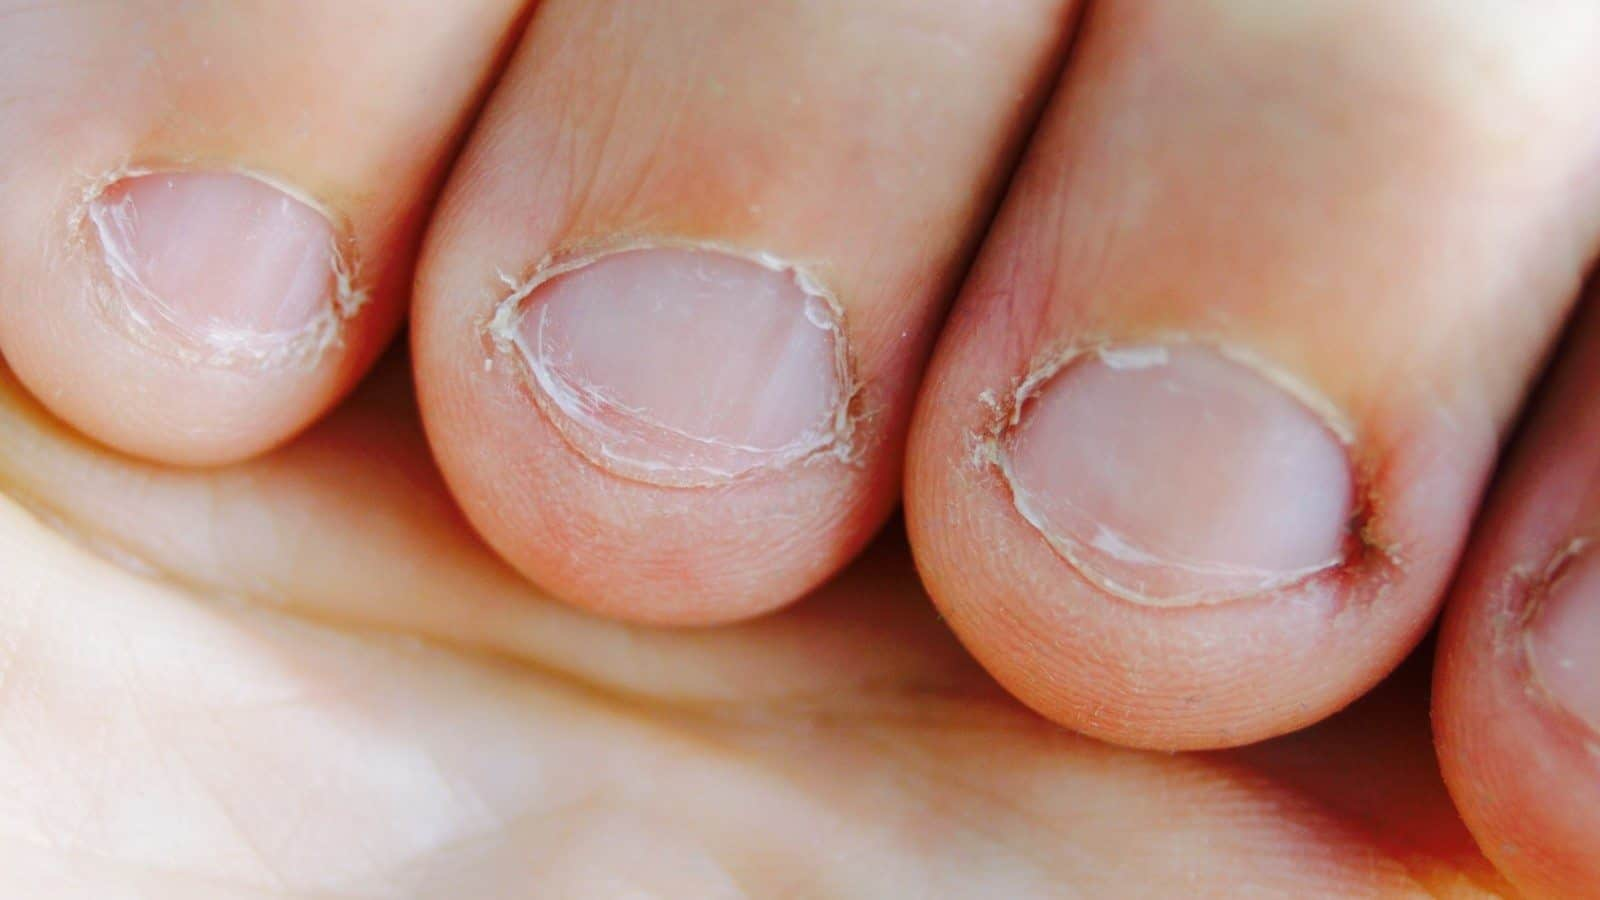 Researchers Explain What Biting Your Nails Says About Your Personality